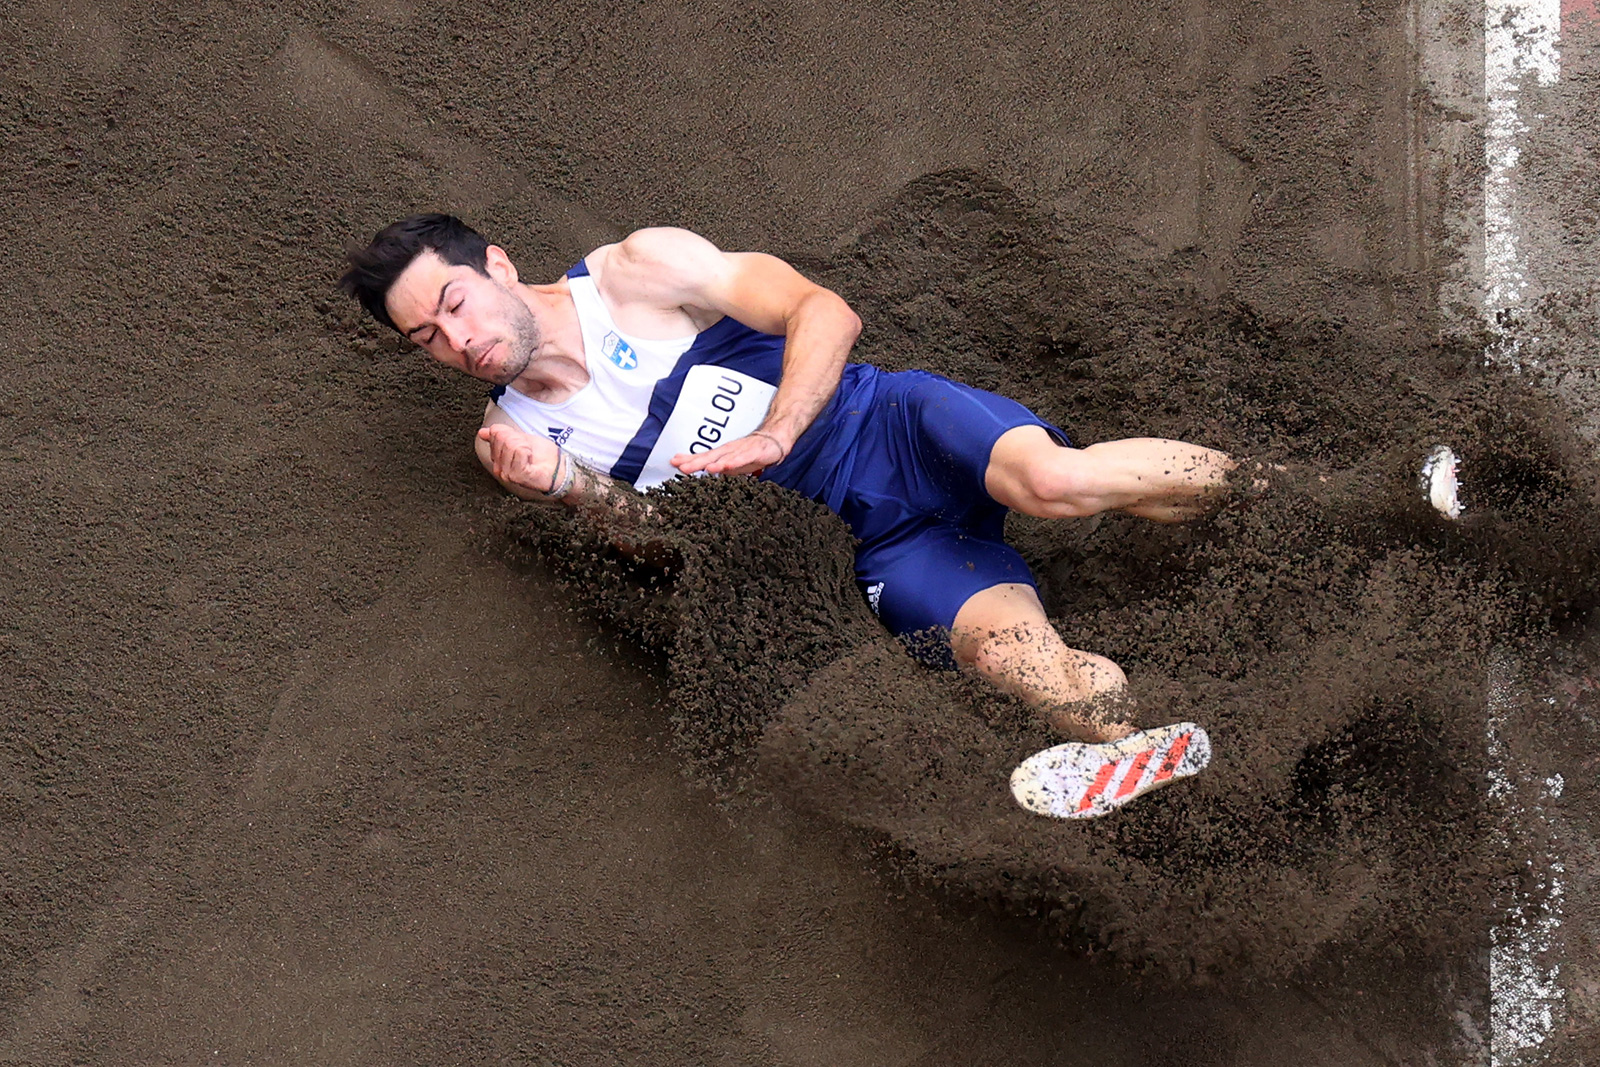 Greece's Miltiadis Tentoglou competes in the long jump final on Monday.